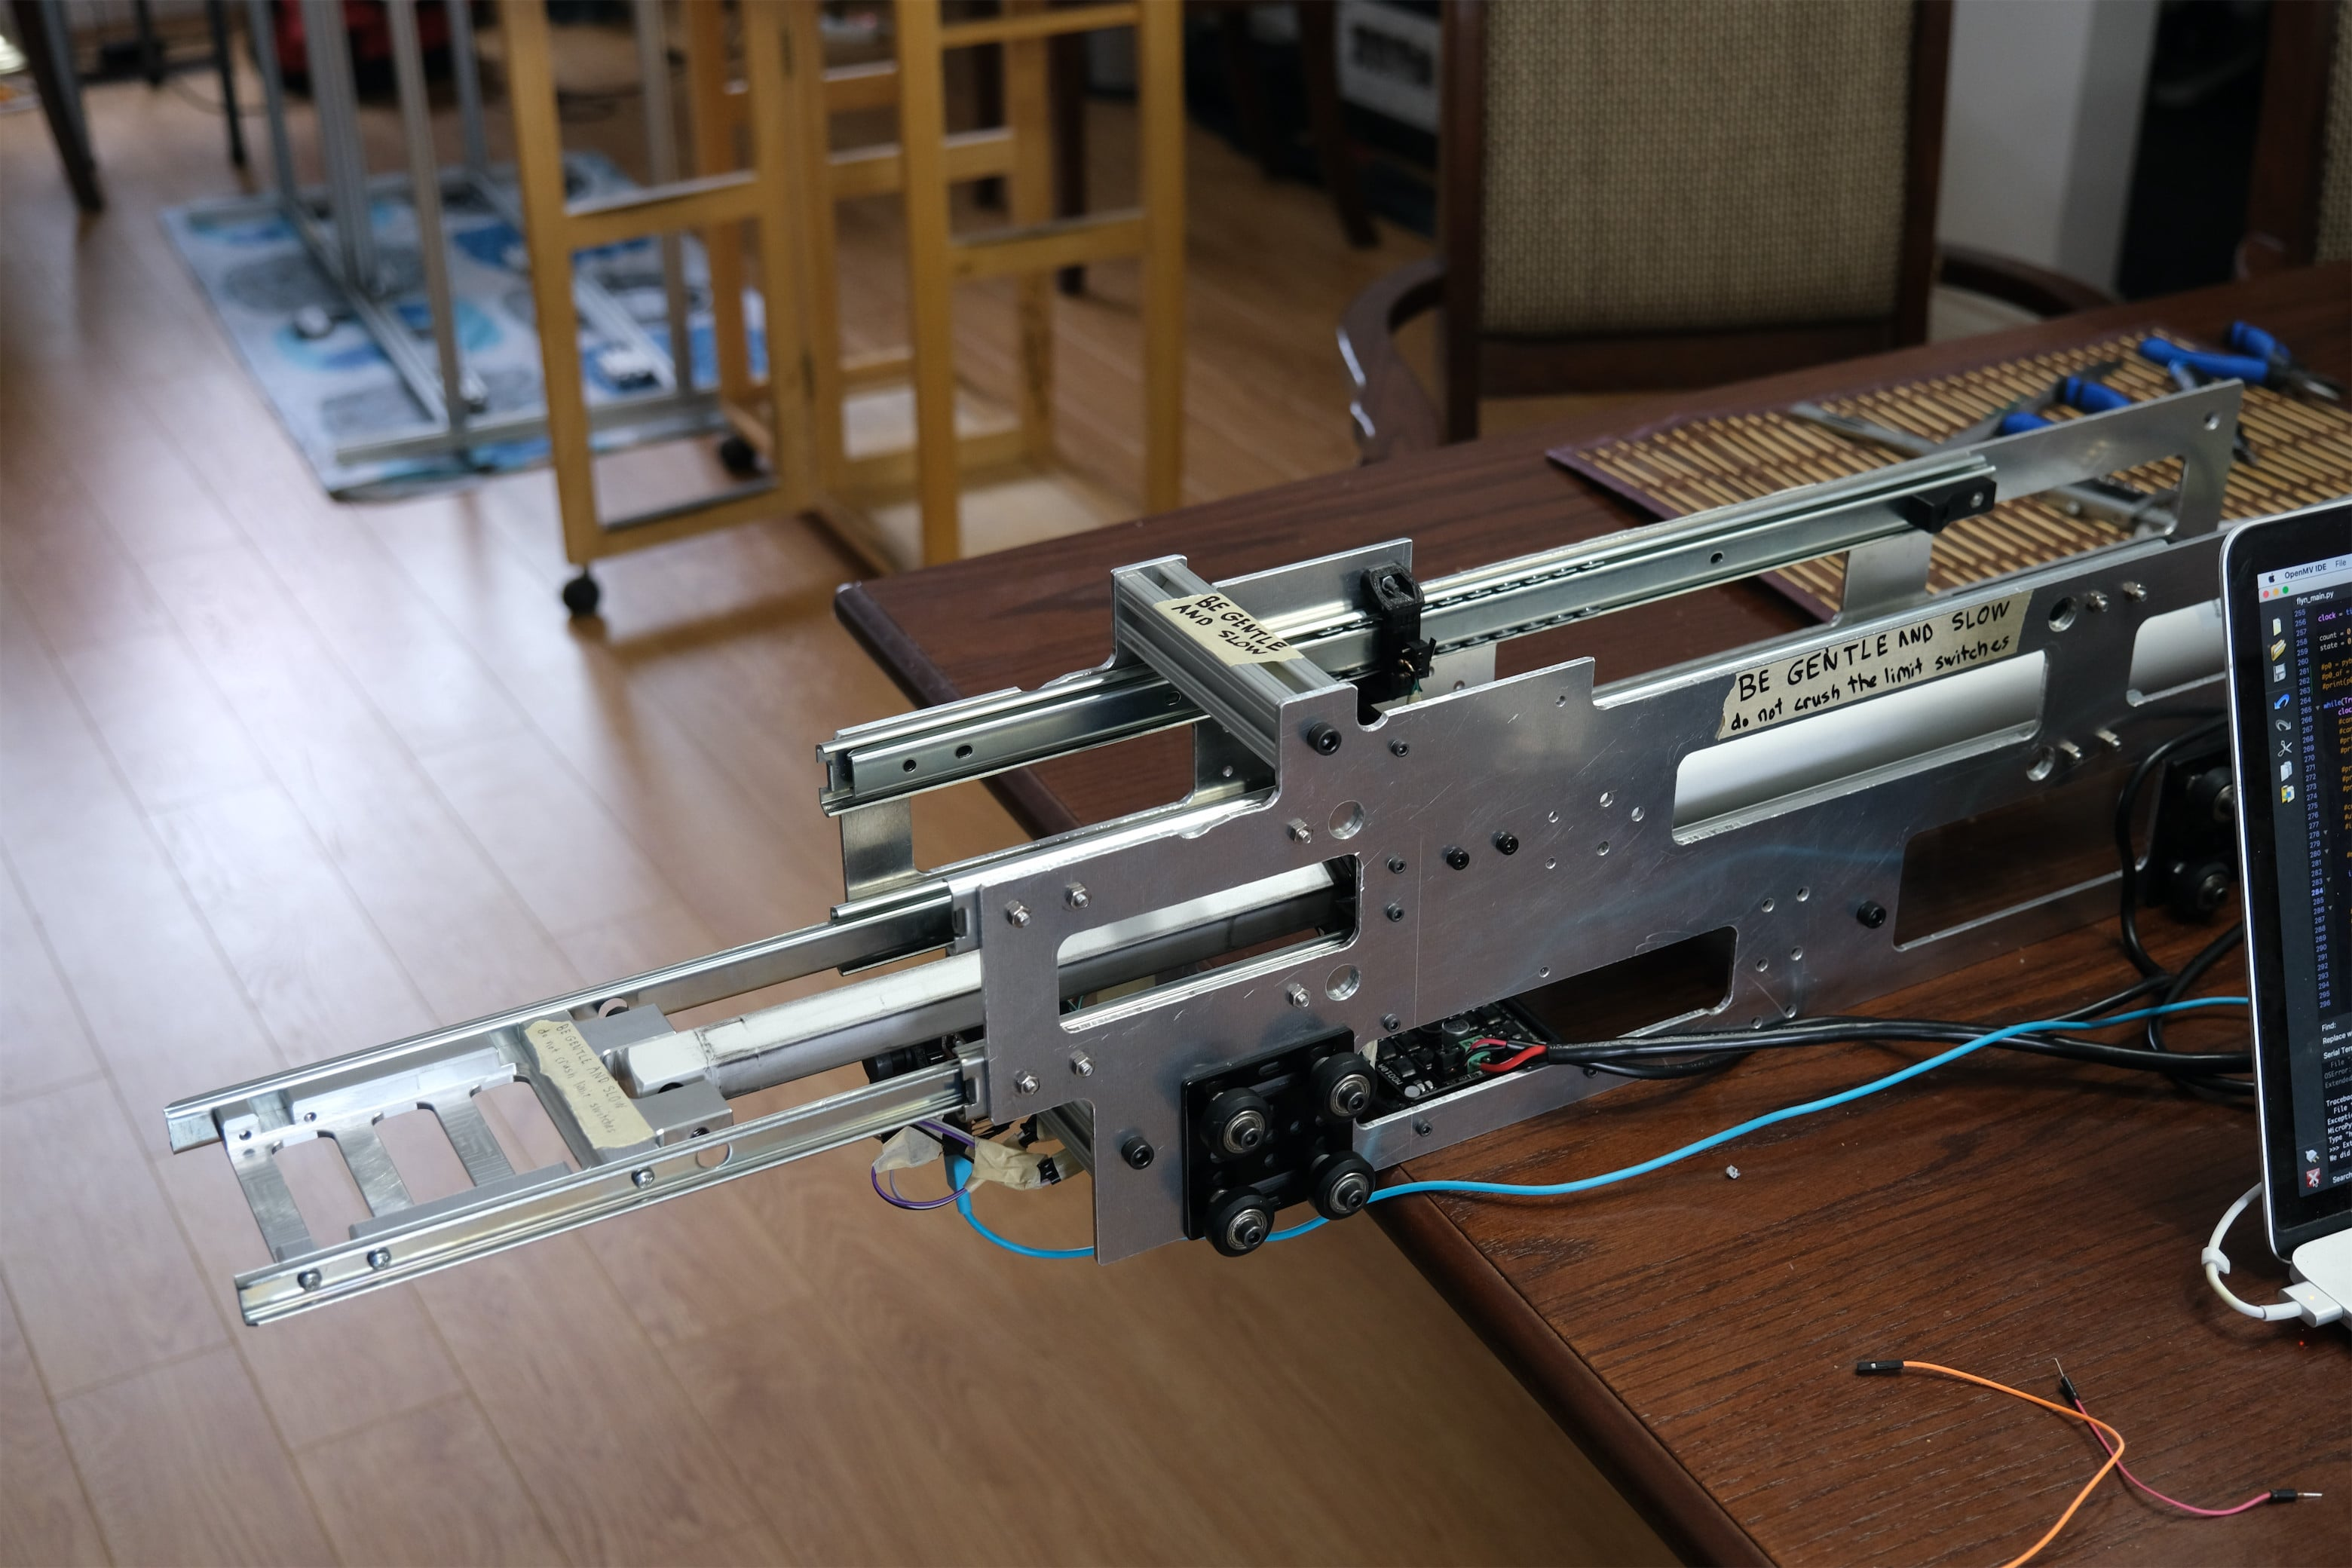 Linear actuator, mounted to Flyn with end effector visible.